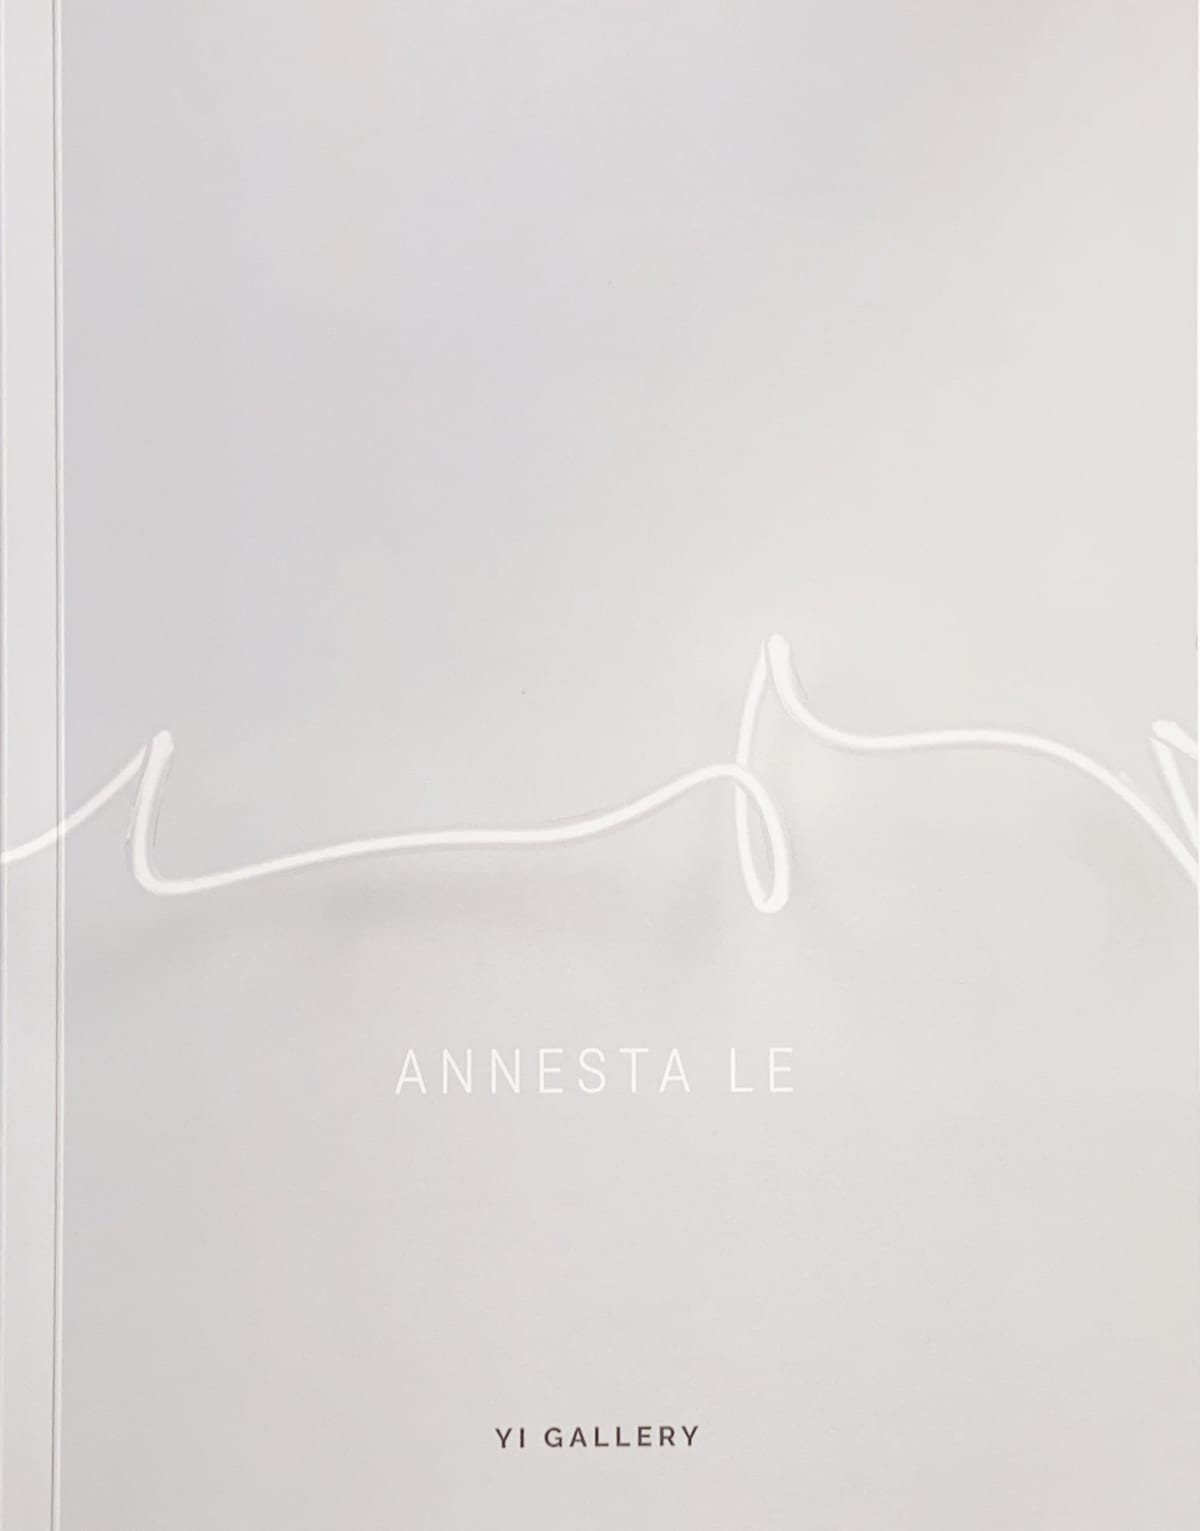 Annesta Le Inner Space, 2020 Exhibition Catalog 11 x 8 1/2 in 27.9 x 21.6 cm